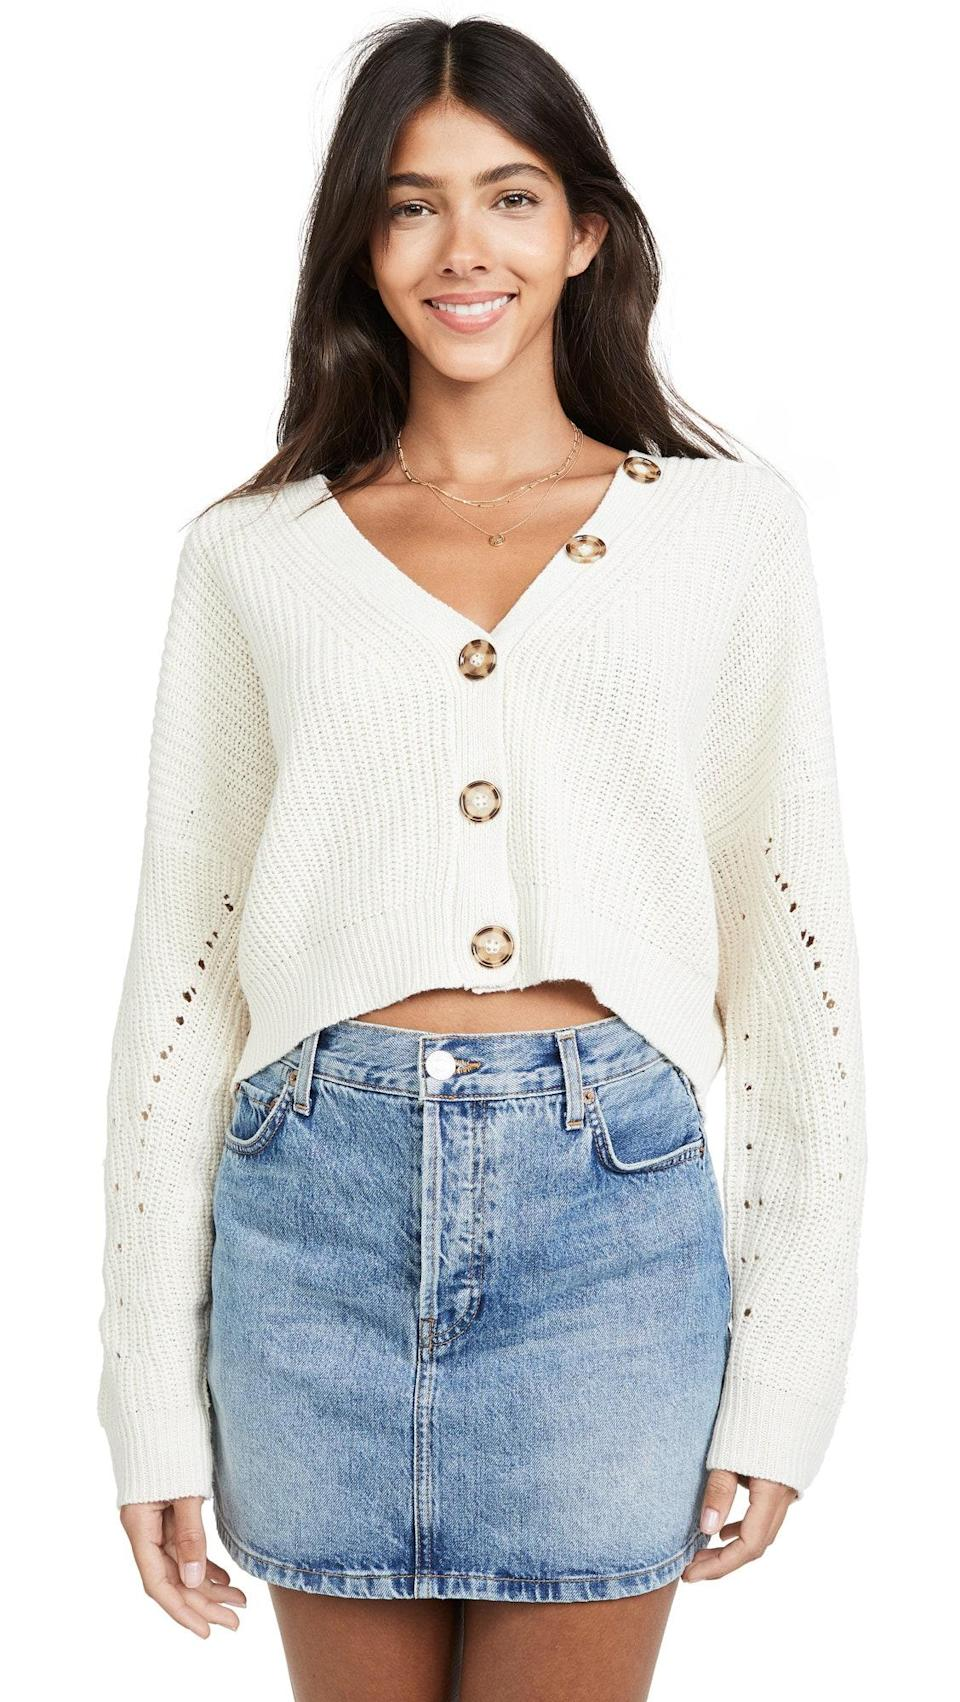 """Line & Dot has a ton of great fall sweaters, but this creamy number stands out. It's just slouchy enough to look cute without appearing sloppy (and the extra buttons on the collar are perfect in case you lose one of the middle ones). $69, Amazon. <a href=""""https://www.amazon.com/Line-Dot-Womens-Scarlett-Cardigan/dp/B07T753GG5?s=shopbop&ref_=sb_ts"""" rel=""""nofollow noopener"""" target=""""_blank"""" data-ylk=""""slk:Get it now!"""" class=""""link rapid-noclick-resp"""">Get it now!</a>"""